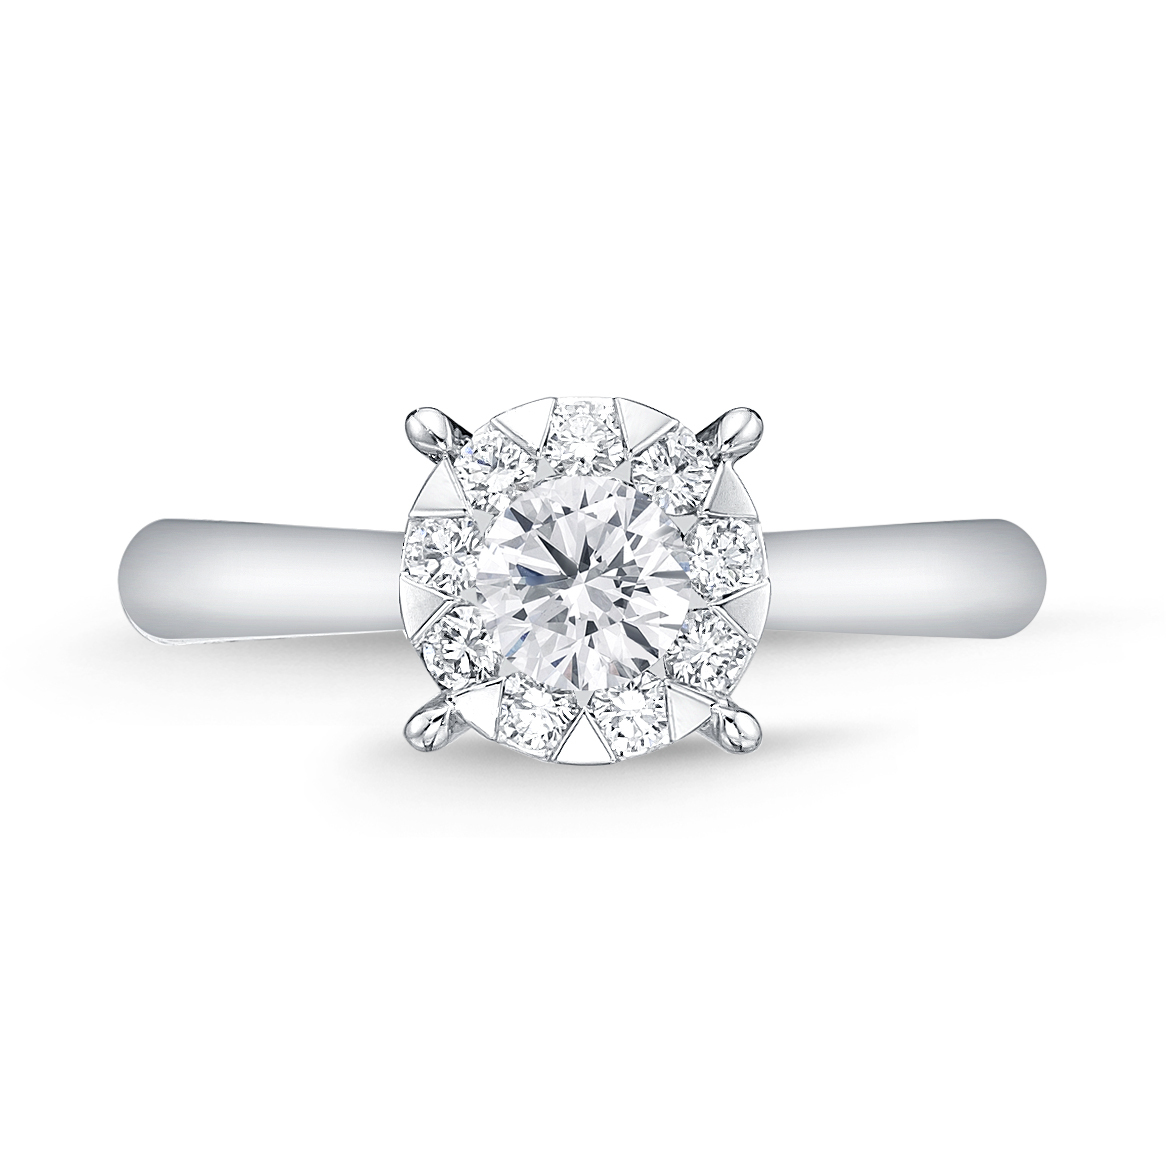 Memoire 18ct White Gold 0.60 Carat Diamond Bouquet Solitaire Ring